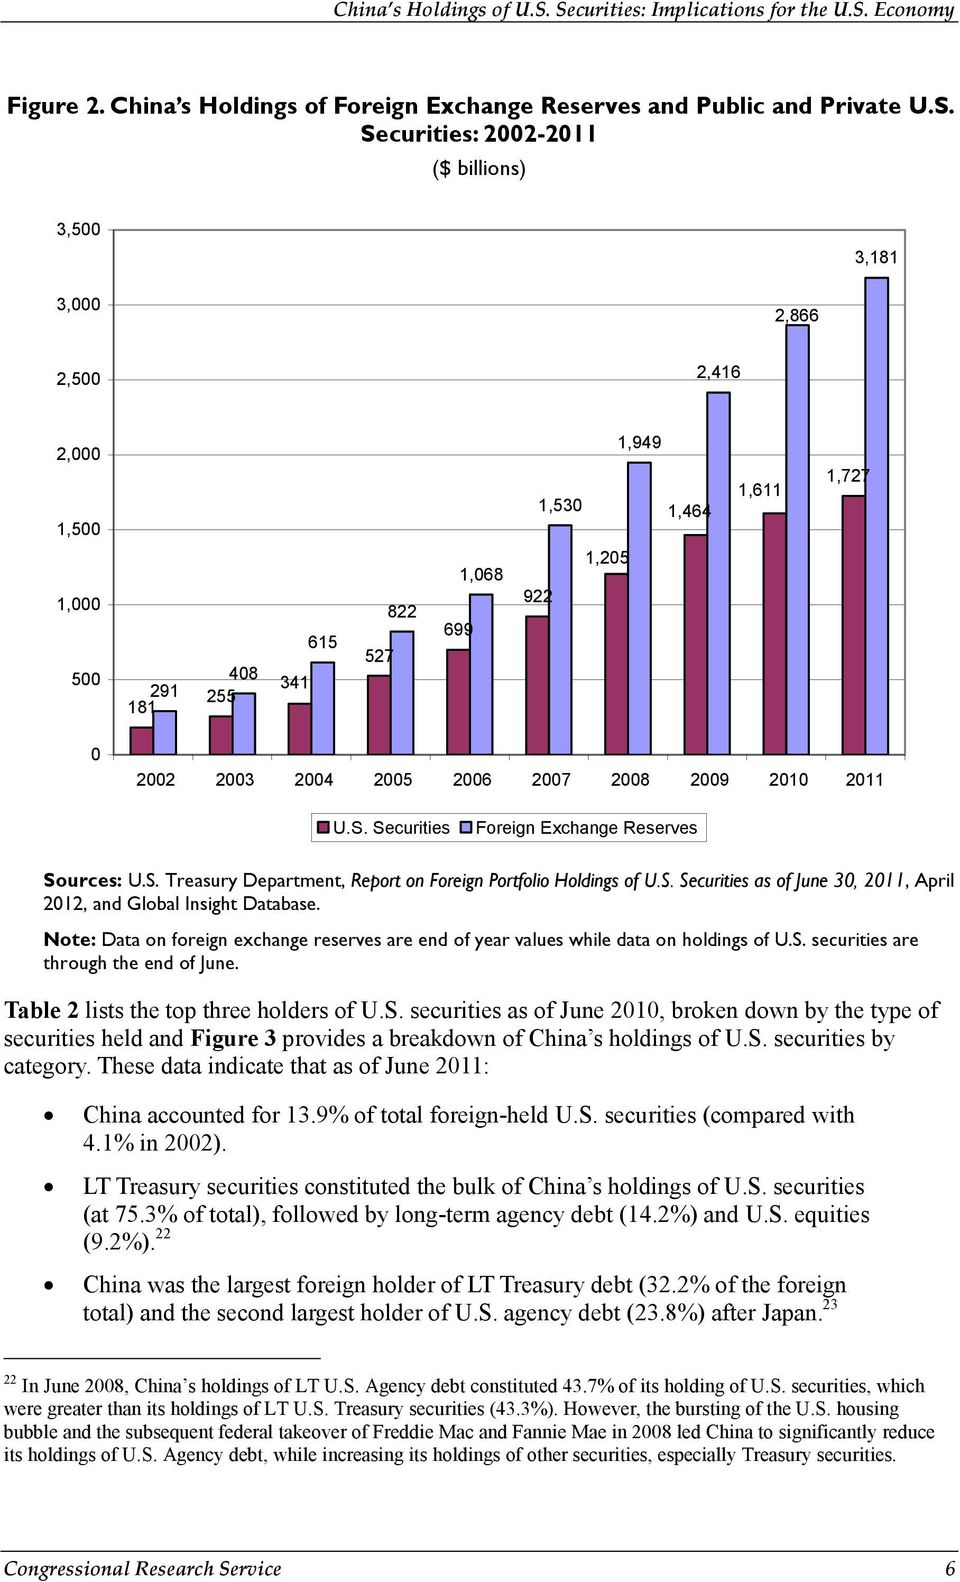 2006 2007 2008 2009 2010 2011 U.S. Securities Foreign Exchange Reserves Sources: U.S. Treasury Department, Report on Foreign Portfolio Holdings of U.S. Securities as of June 30, 2011, April 2012, and Global Insight Database.